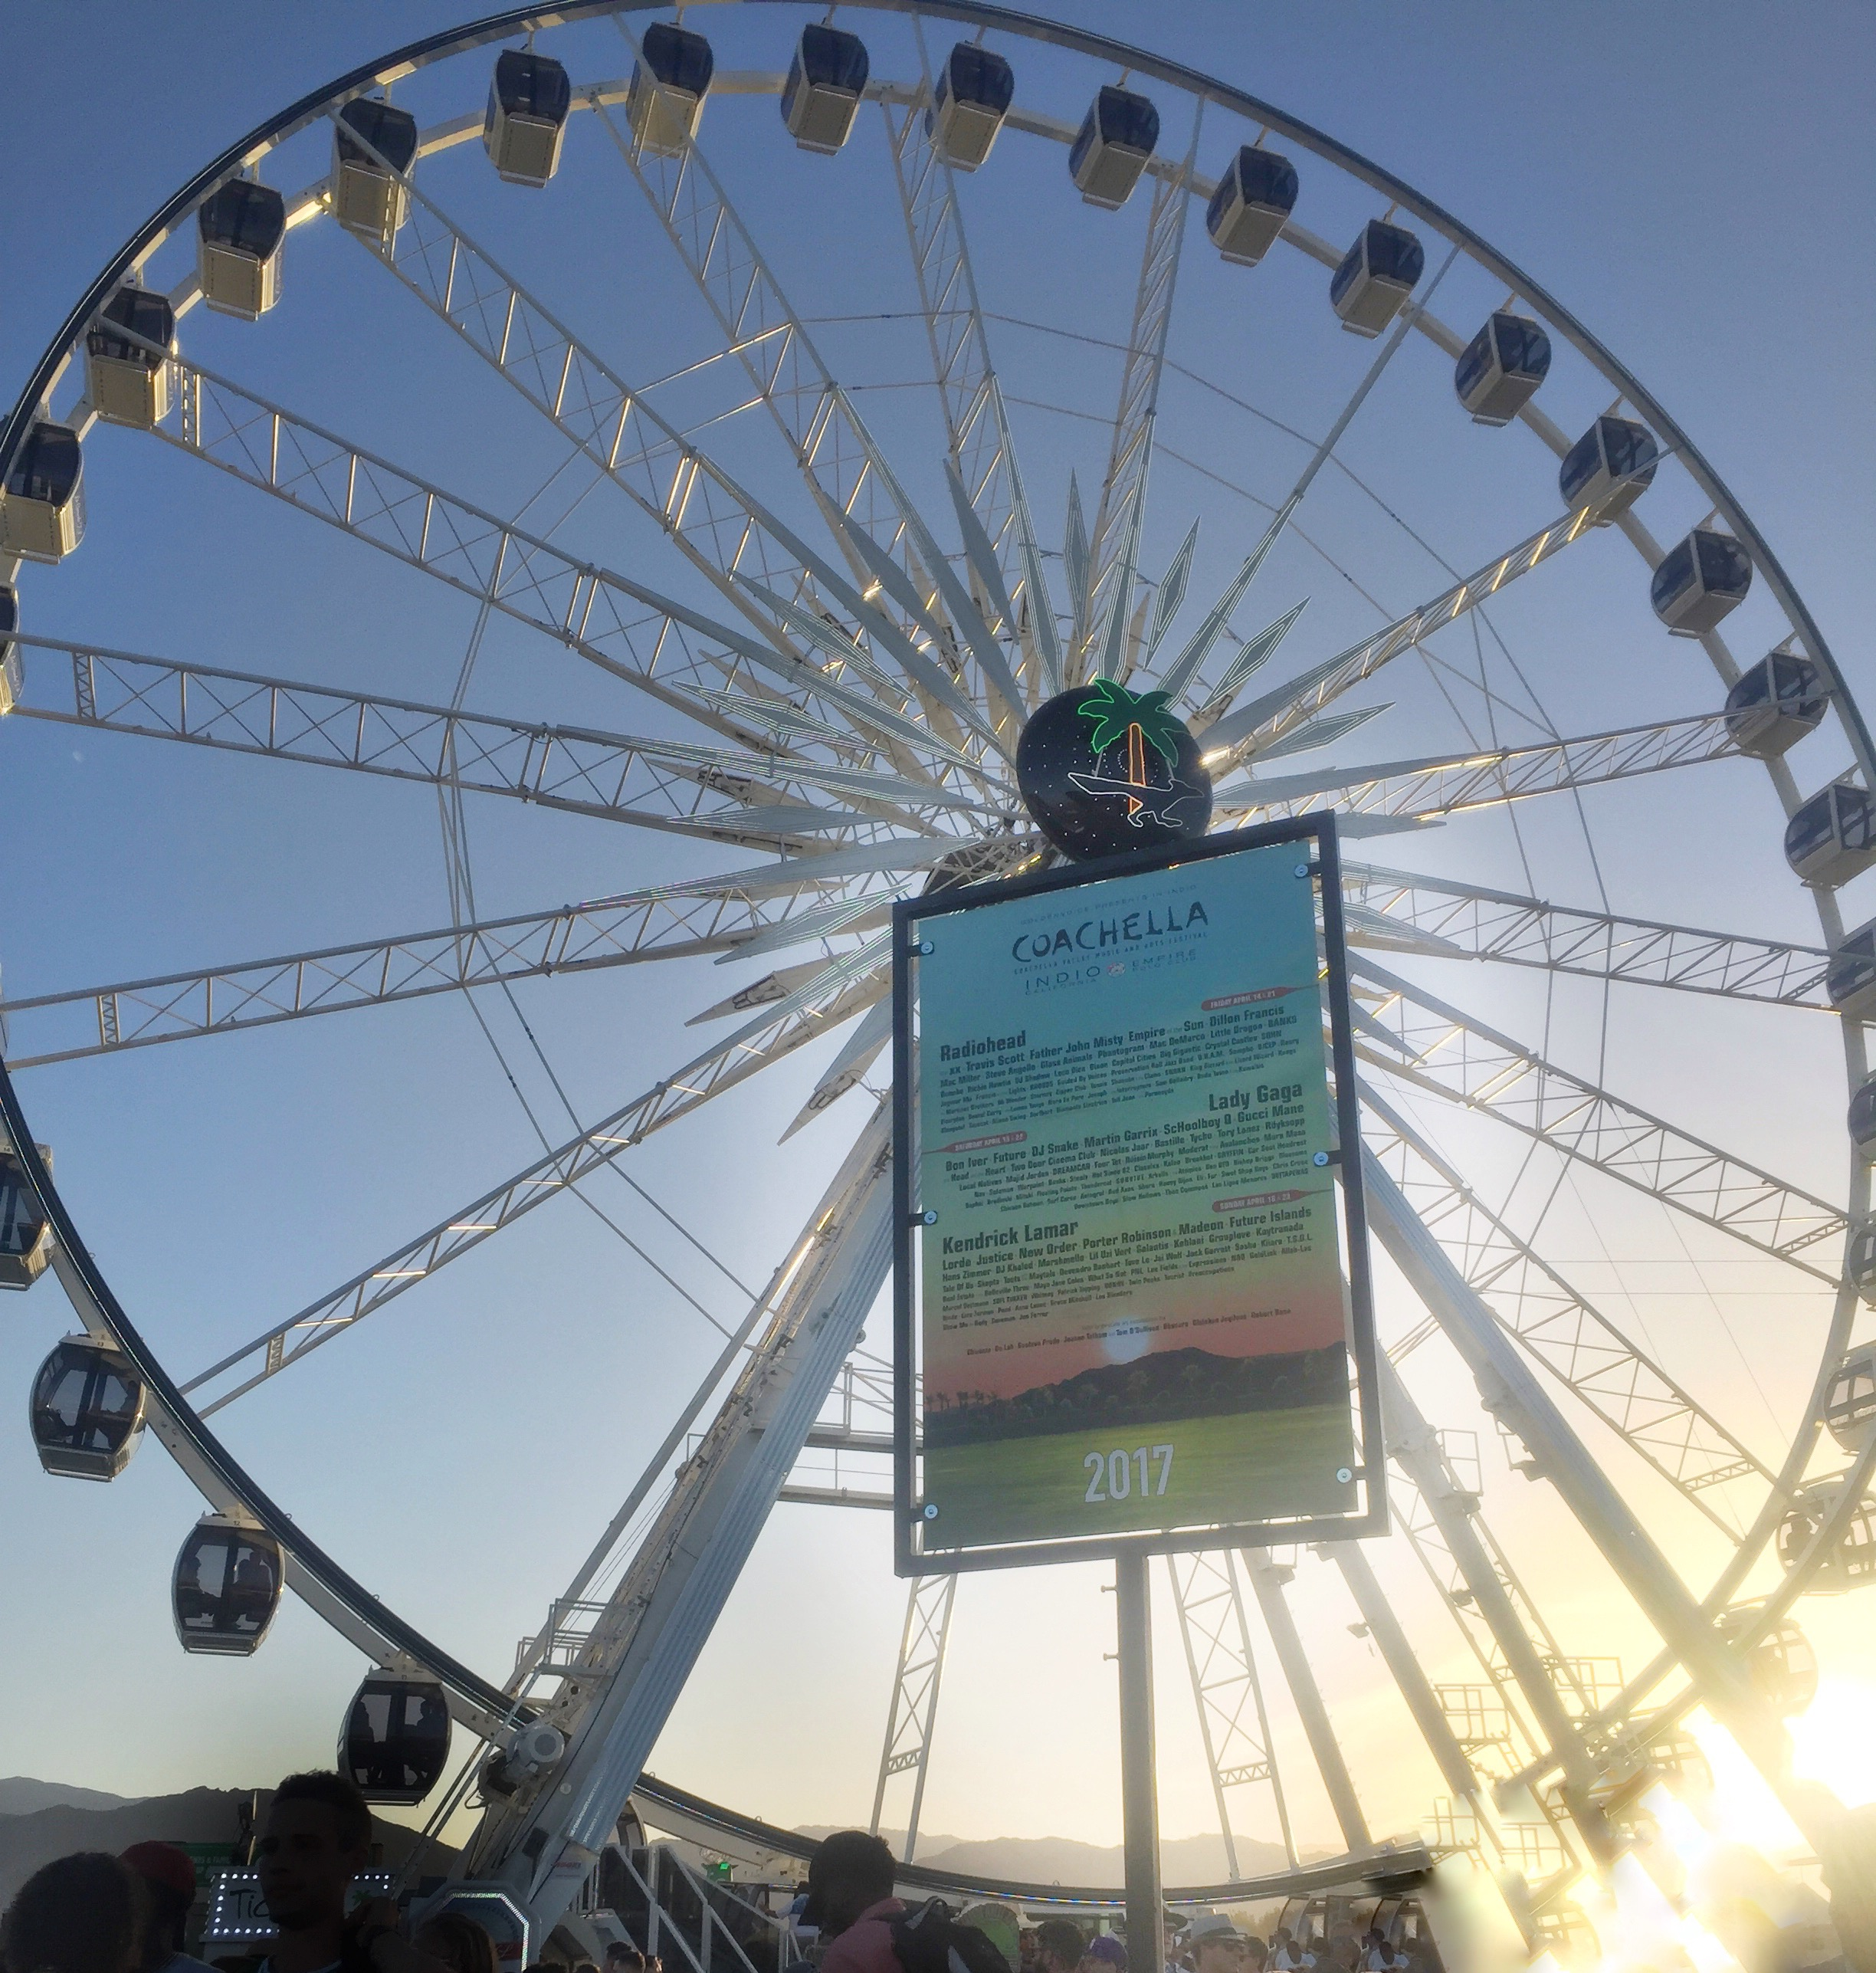 Coachella_2017_Ferris_Wheel